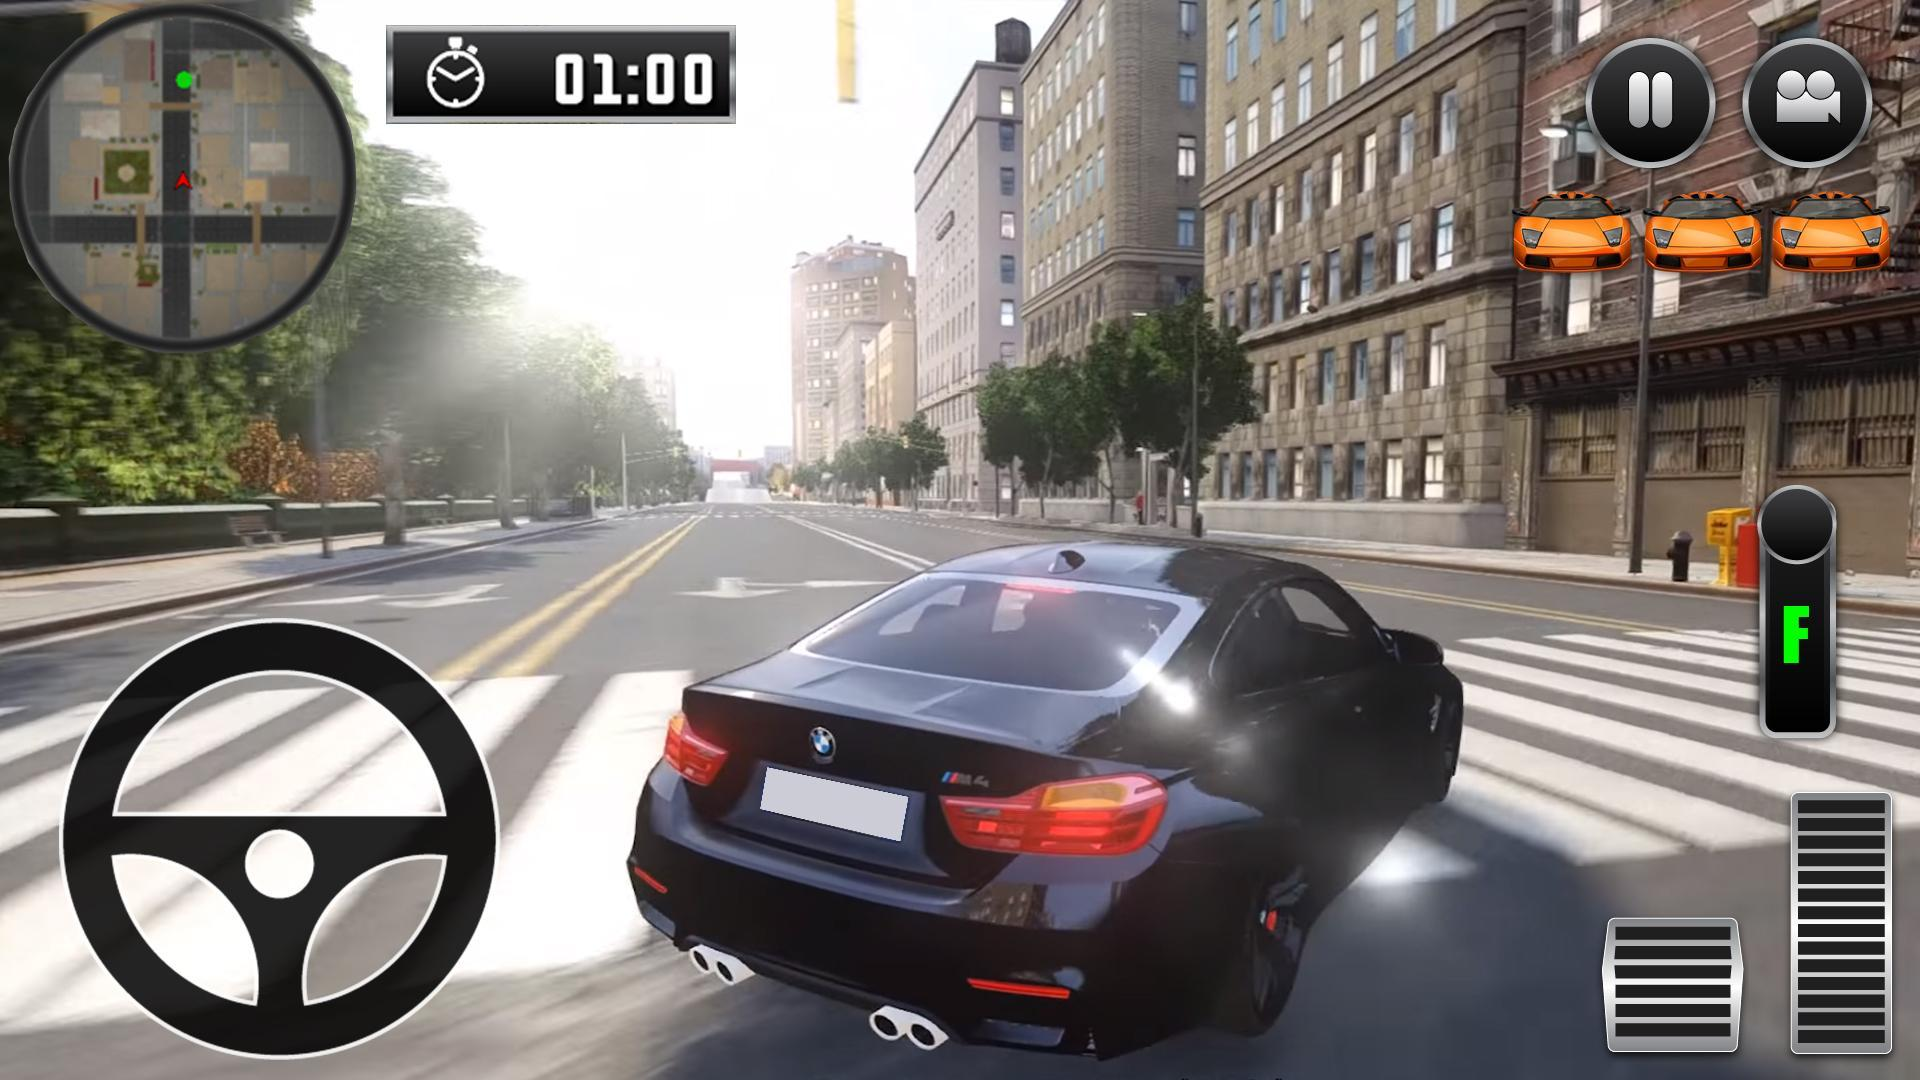 City Driving Bmw Simulator For Android Apk Download